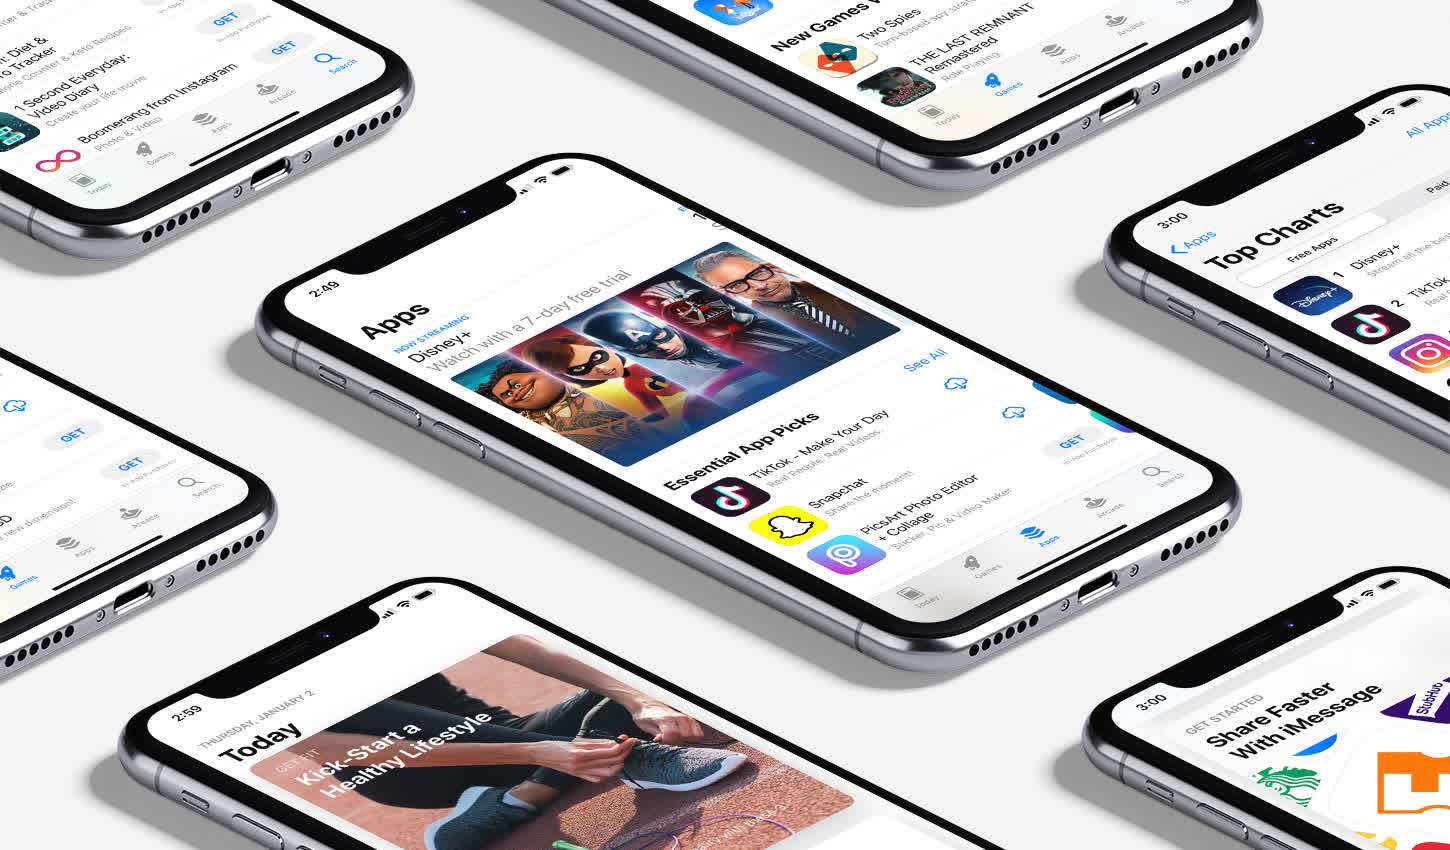 App revenue grew to $29 billion in Q3 2020, with two thirds being generated by Apple's App Store